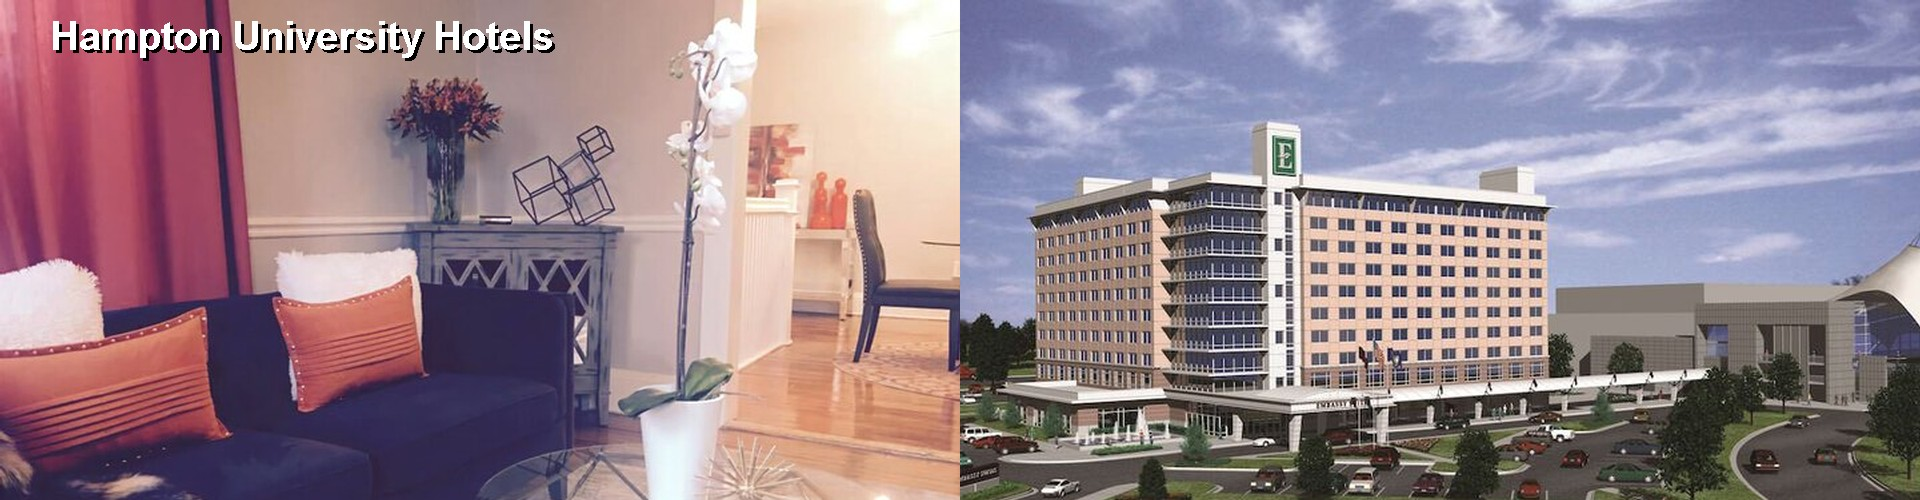 4 Best Hotels near Hampton University